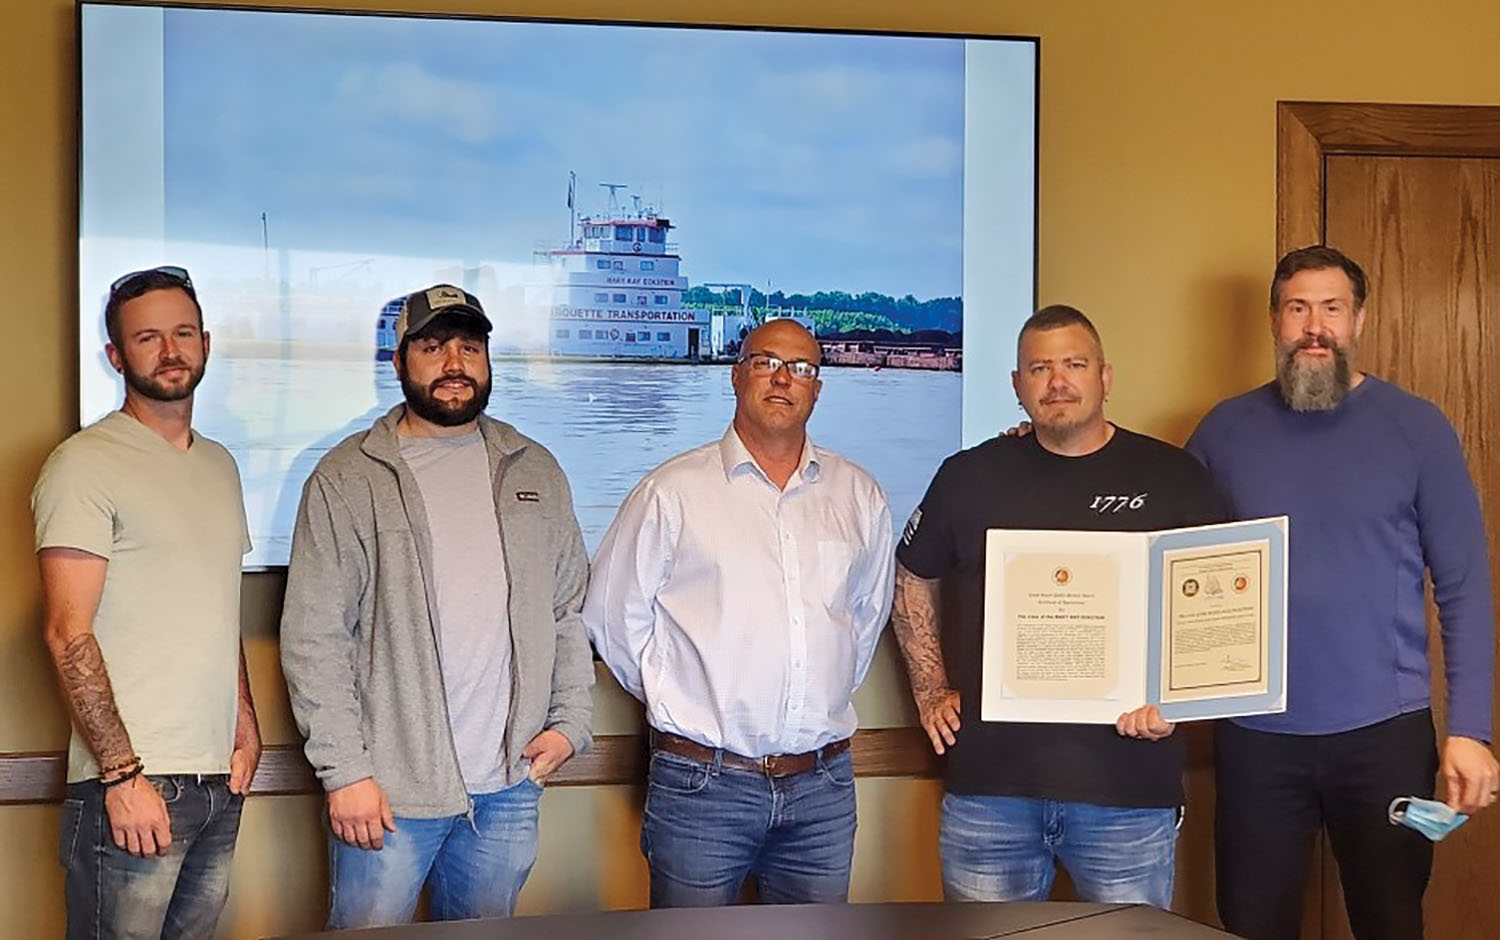 The Coast Guard has honored the crew of the mv. Mary Kay Eckstein with a public service award certificate of appreciation in connection with three separate rescues. Pictured (left to right) are Thomas Cottrell, mate; Colby Mitchell, senior mate; Gary Frayser, senior port captain; David Helton, high captain; and Chris Myskowski, Marquette Transportation's senior vice president of operations, river division. (Photo courtesy of Marquette Transportation)